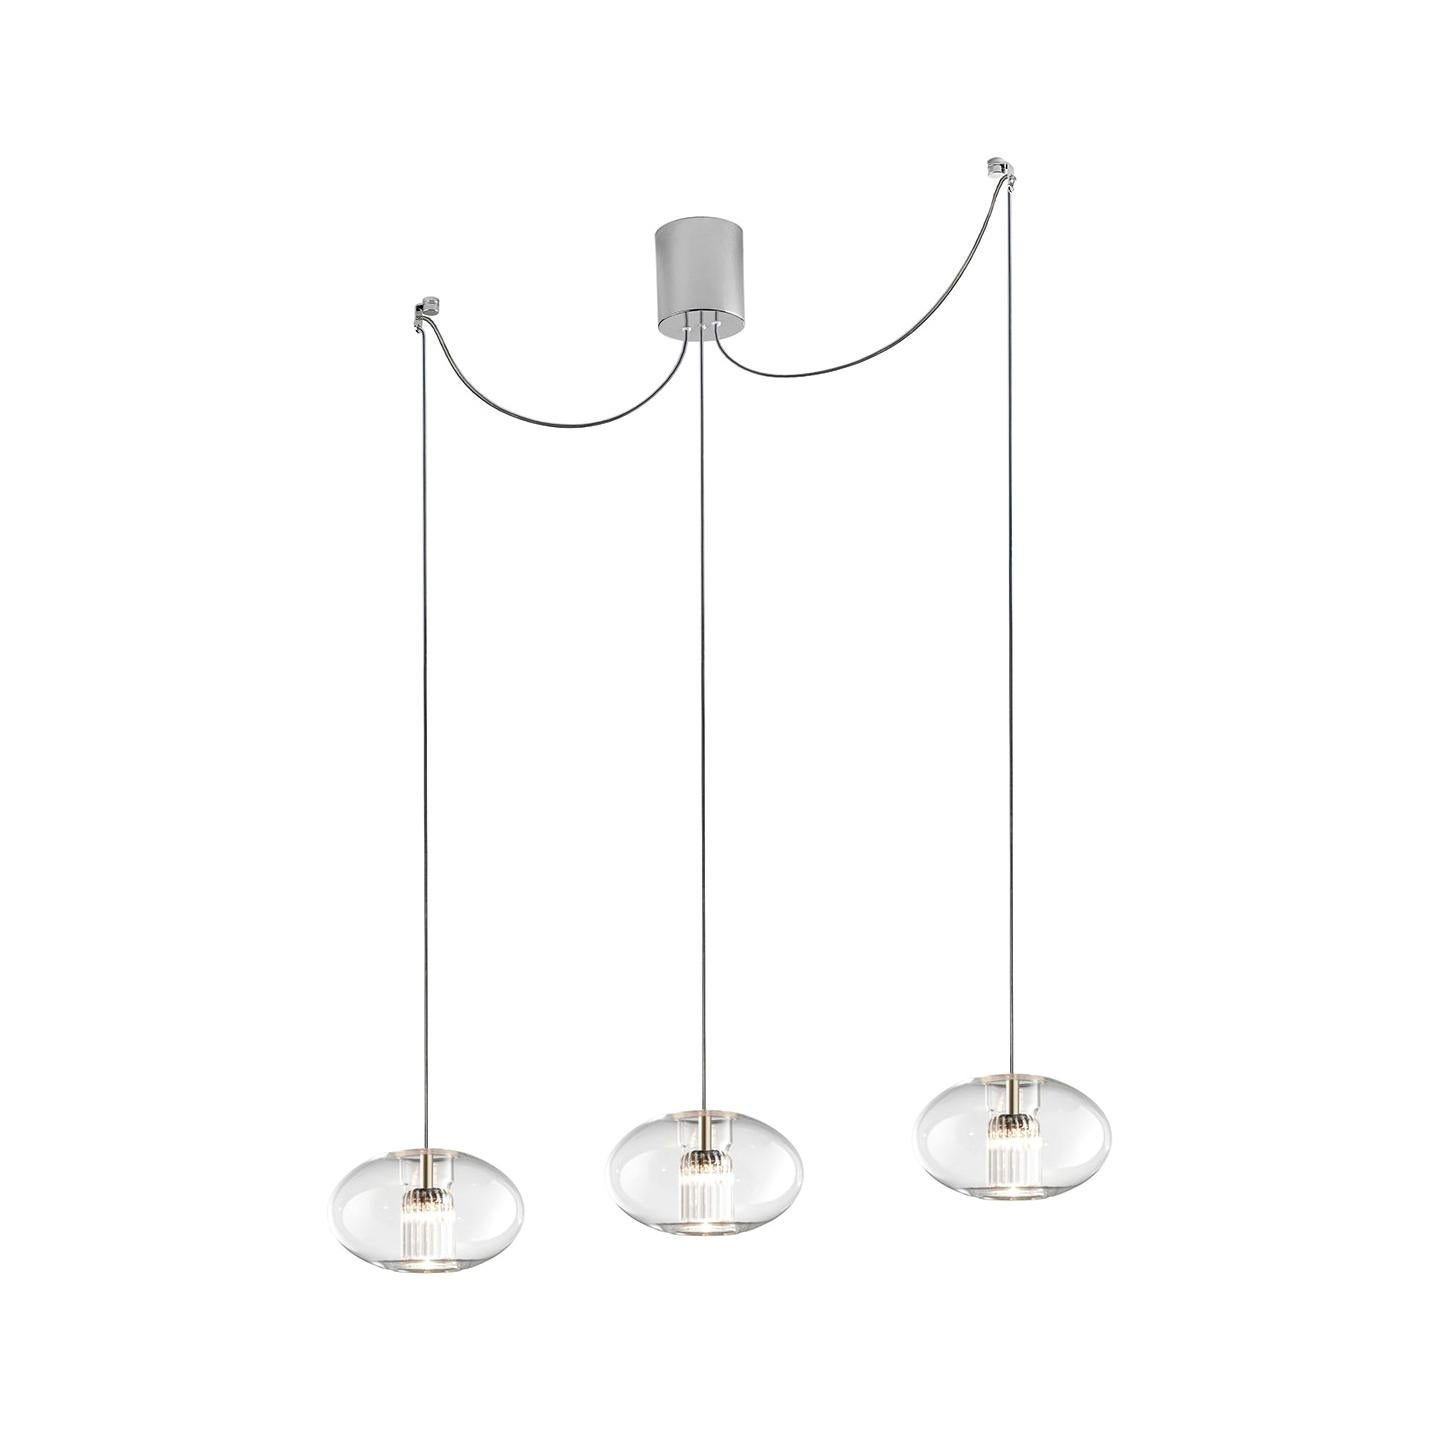 Leucos Fairy S G-D3 LED Multipoint Pendant Light in Transparent and Chrome